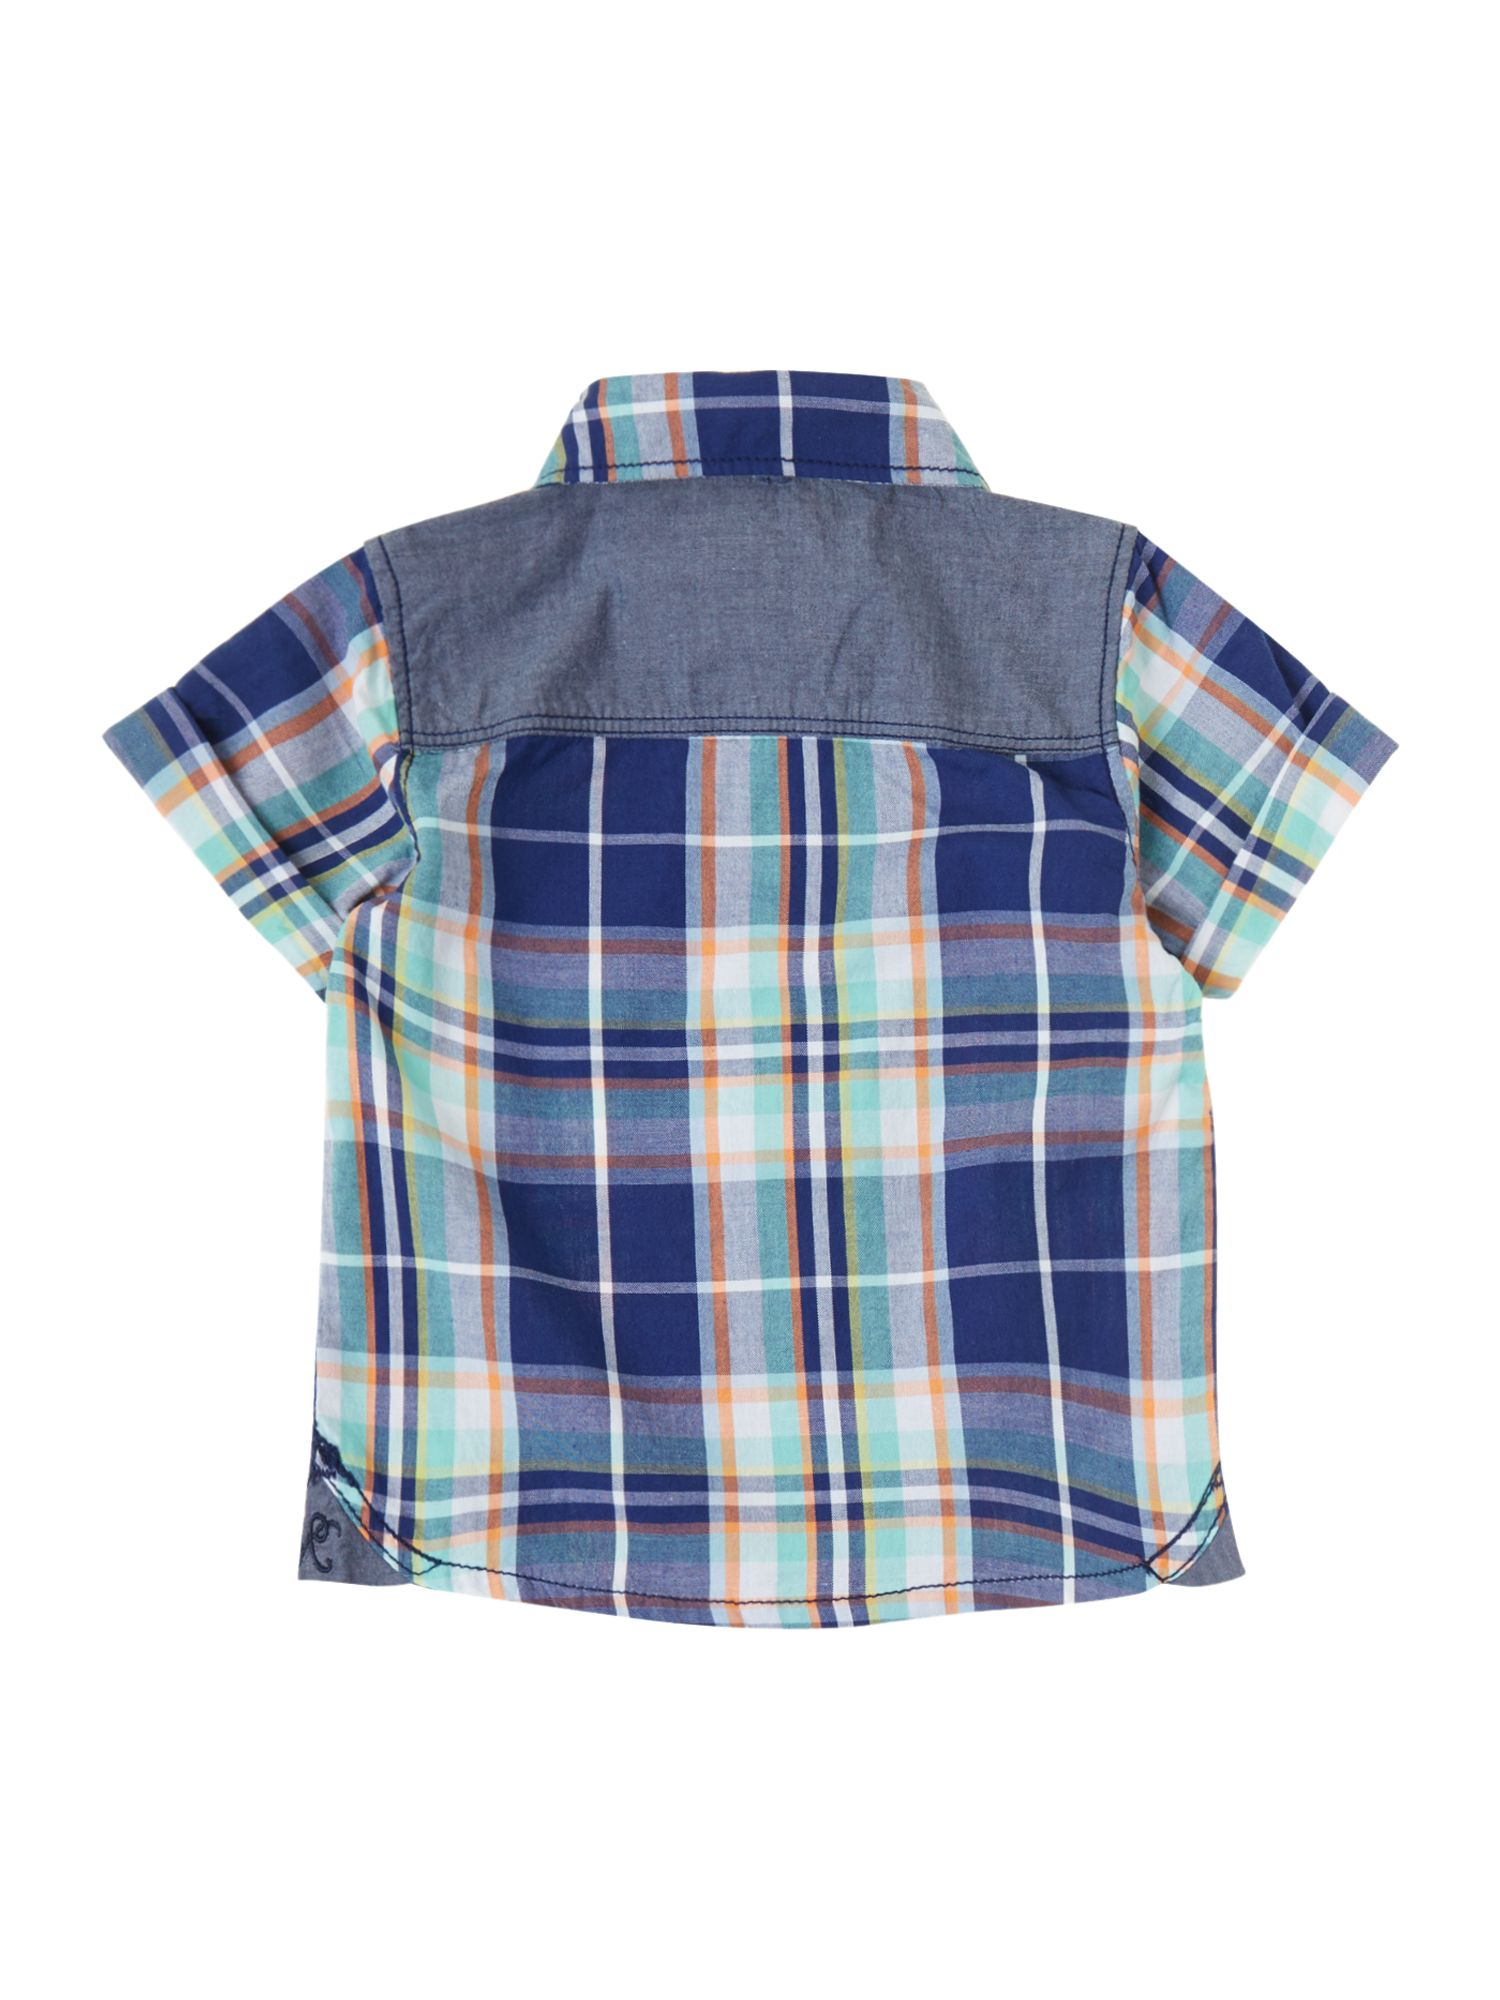 Boys check shirt with turn up sleeve